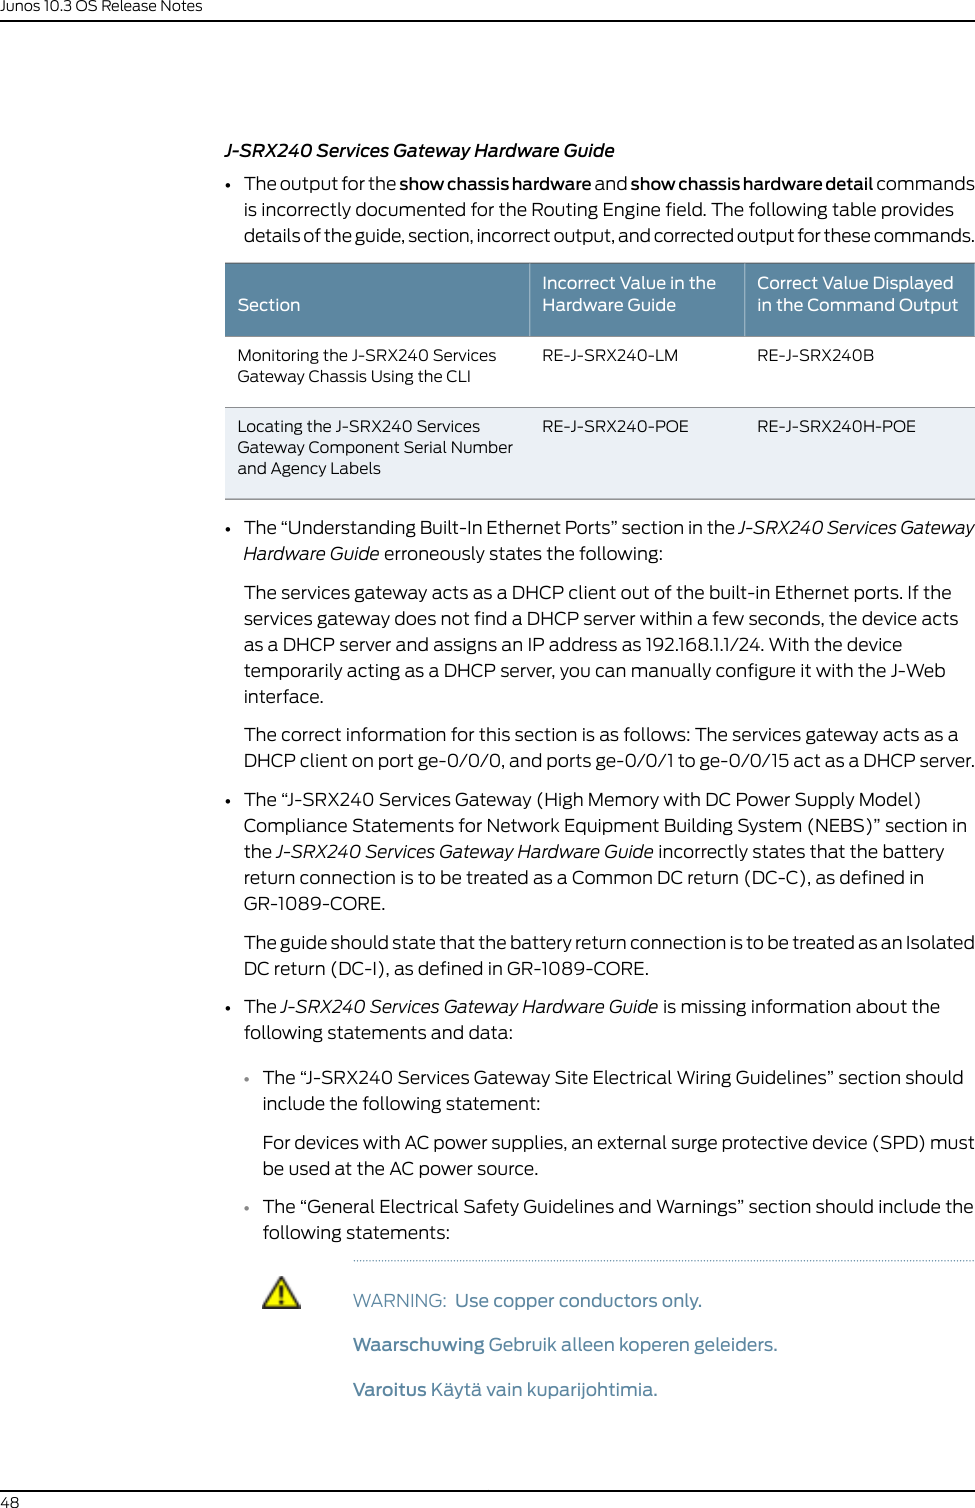 Dell Powerconnect J Srx210 Owners Manual Release Notes JUNOS